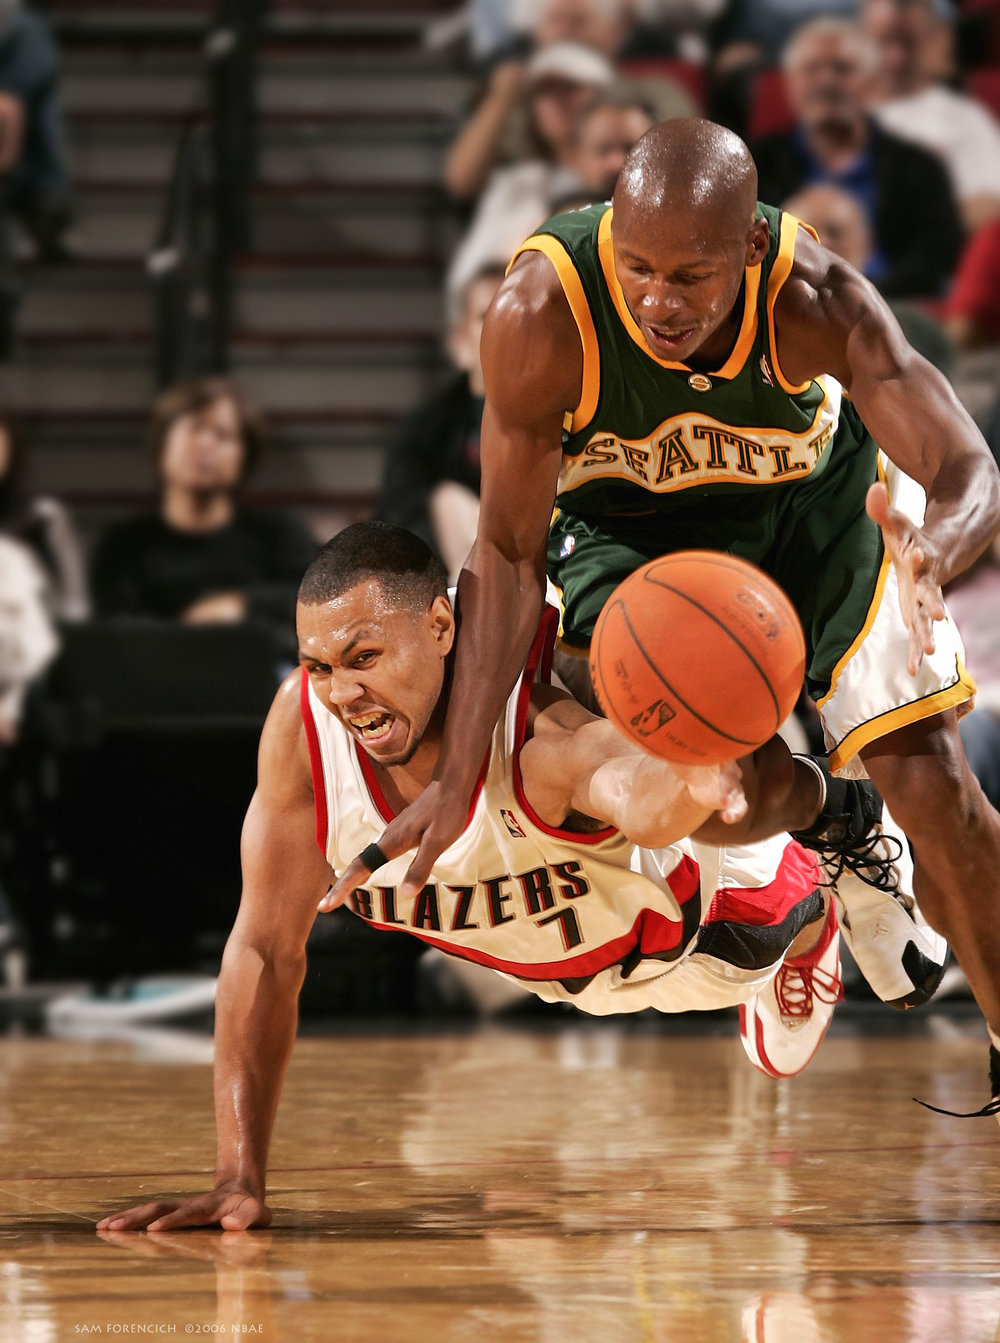 Portland, OR - Brandon Roy #7 of the Portland Trail Blazers and Ray Allen #34 of the Seattle SuperSonics go after a loose ball during the preseason game at the Rose Garden Arena on October 11, 2006. Digital 35mm, arena strobe lighting.  Sam Forencich ©2006 NBAE